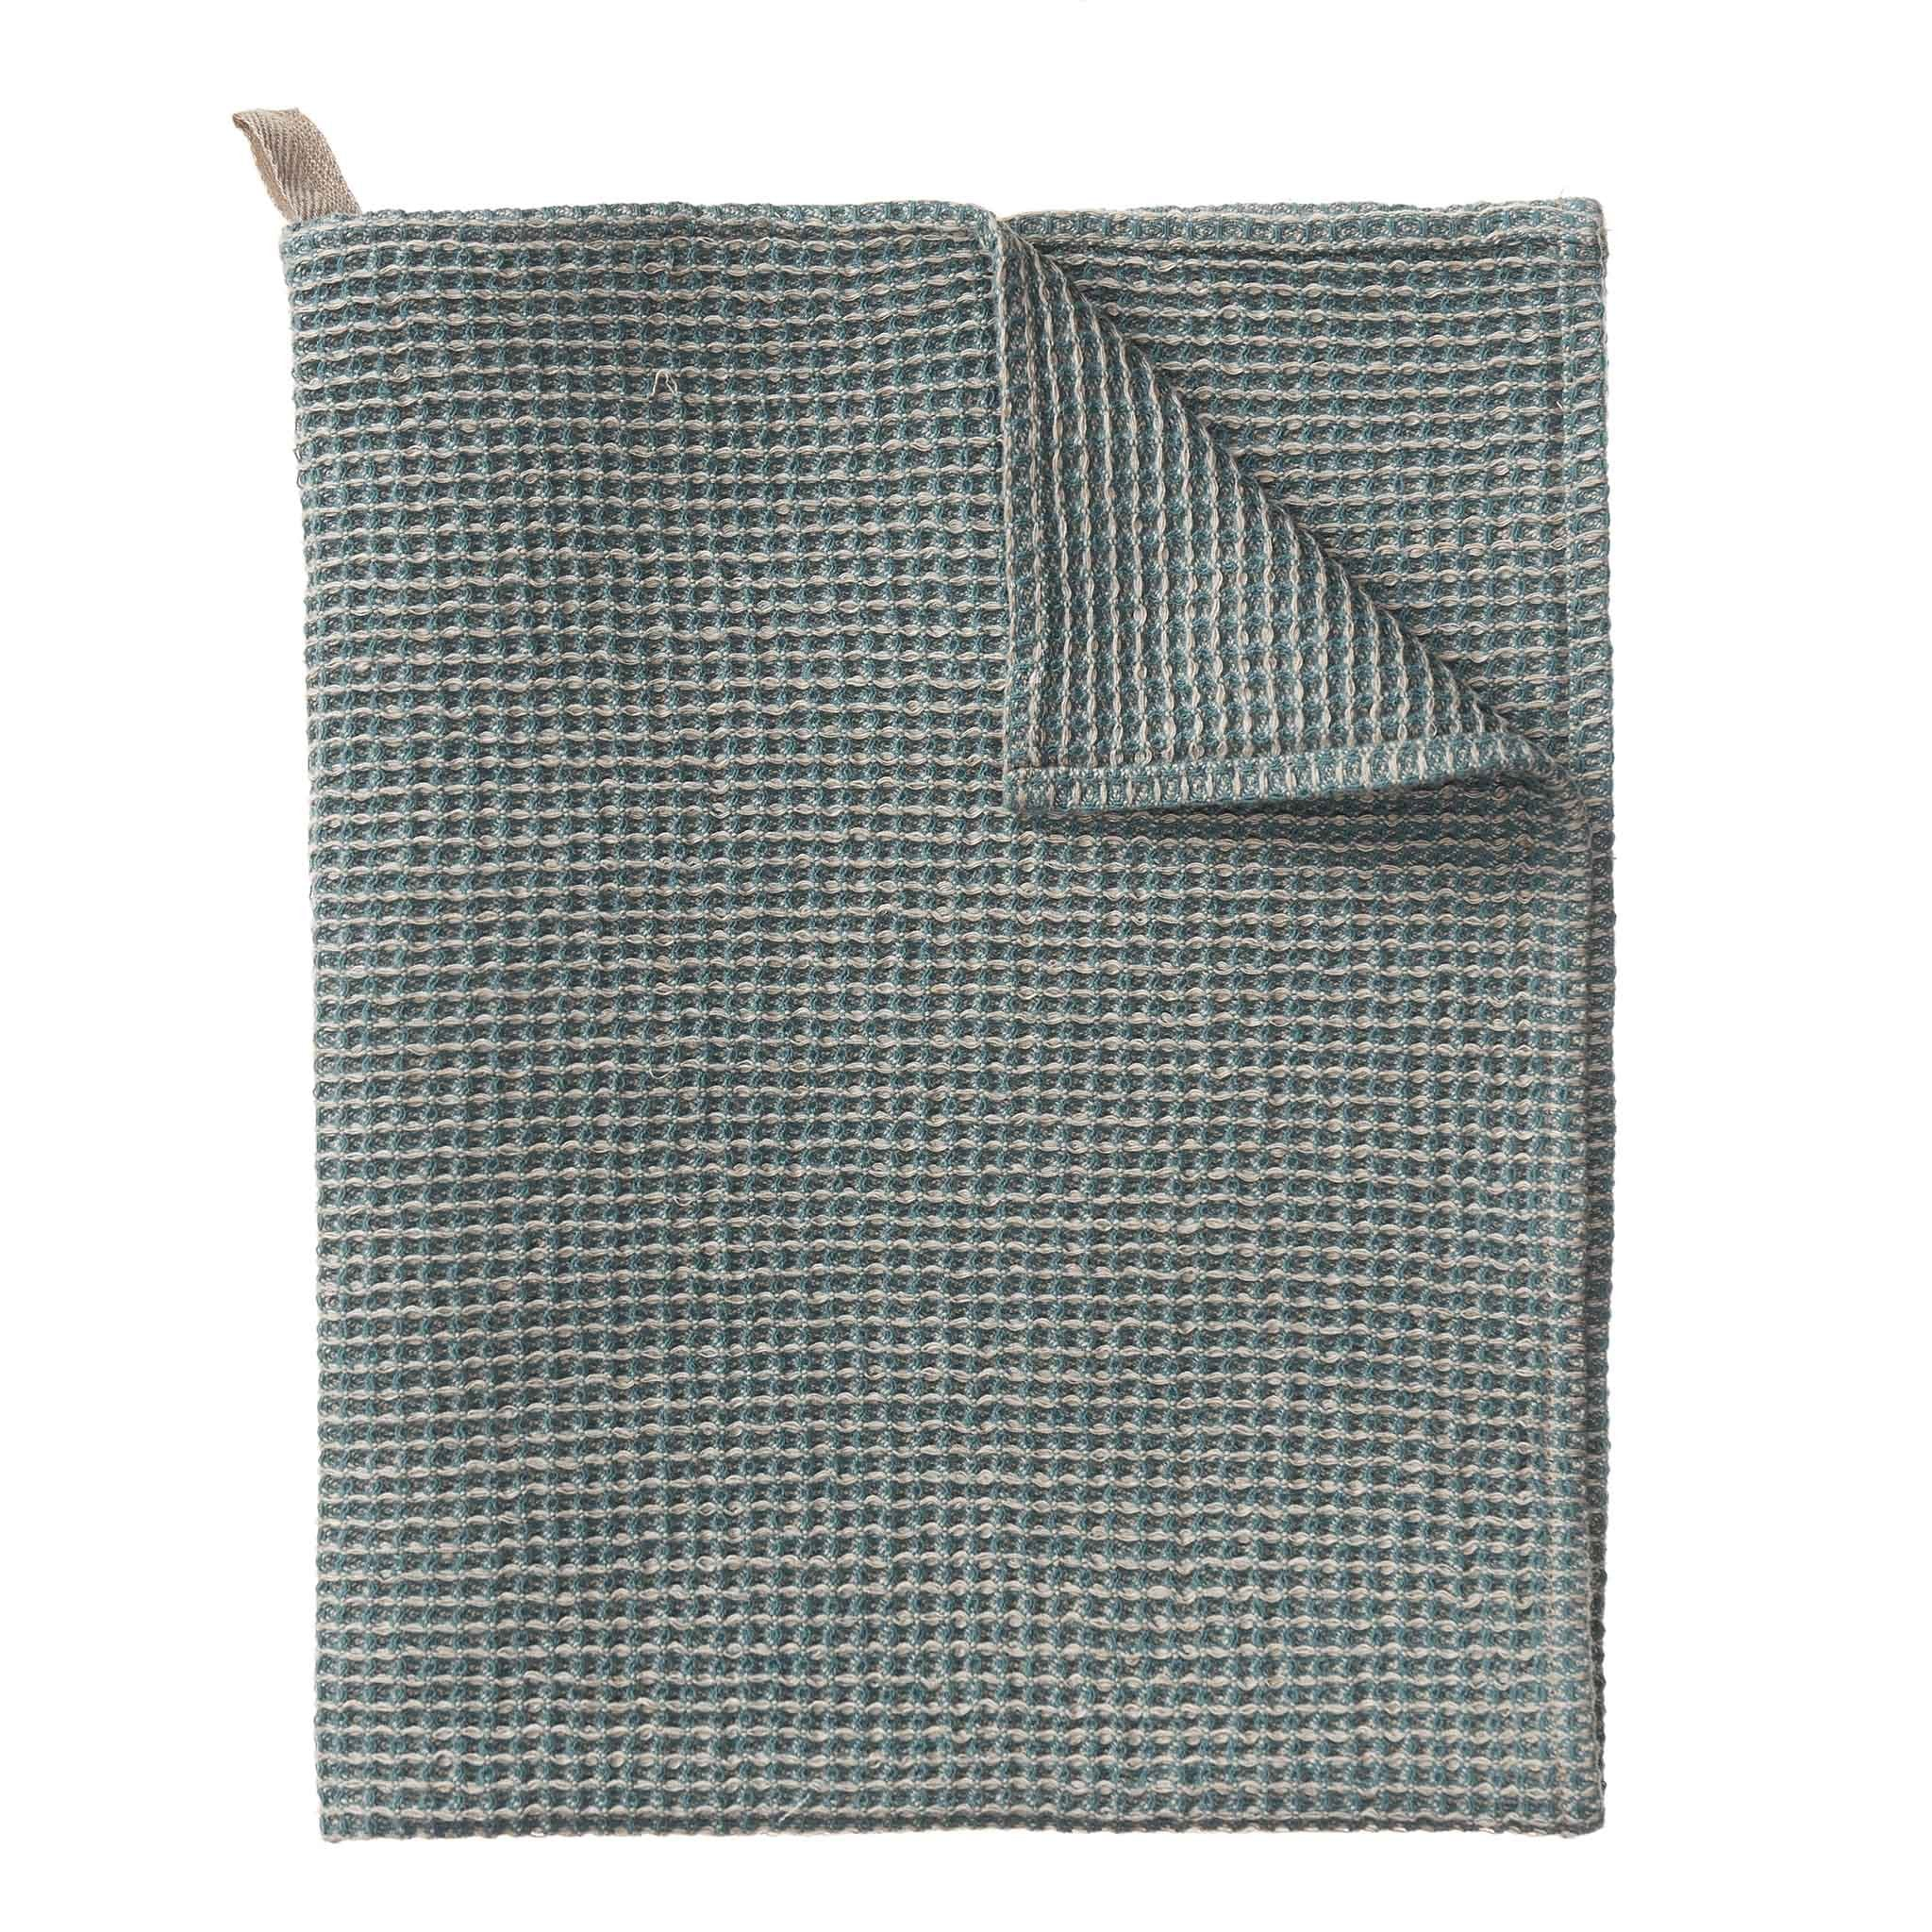 Motrai Tea Towel [Grey green/Natural]